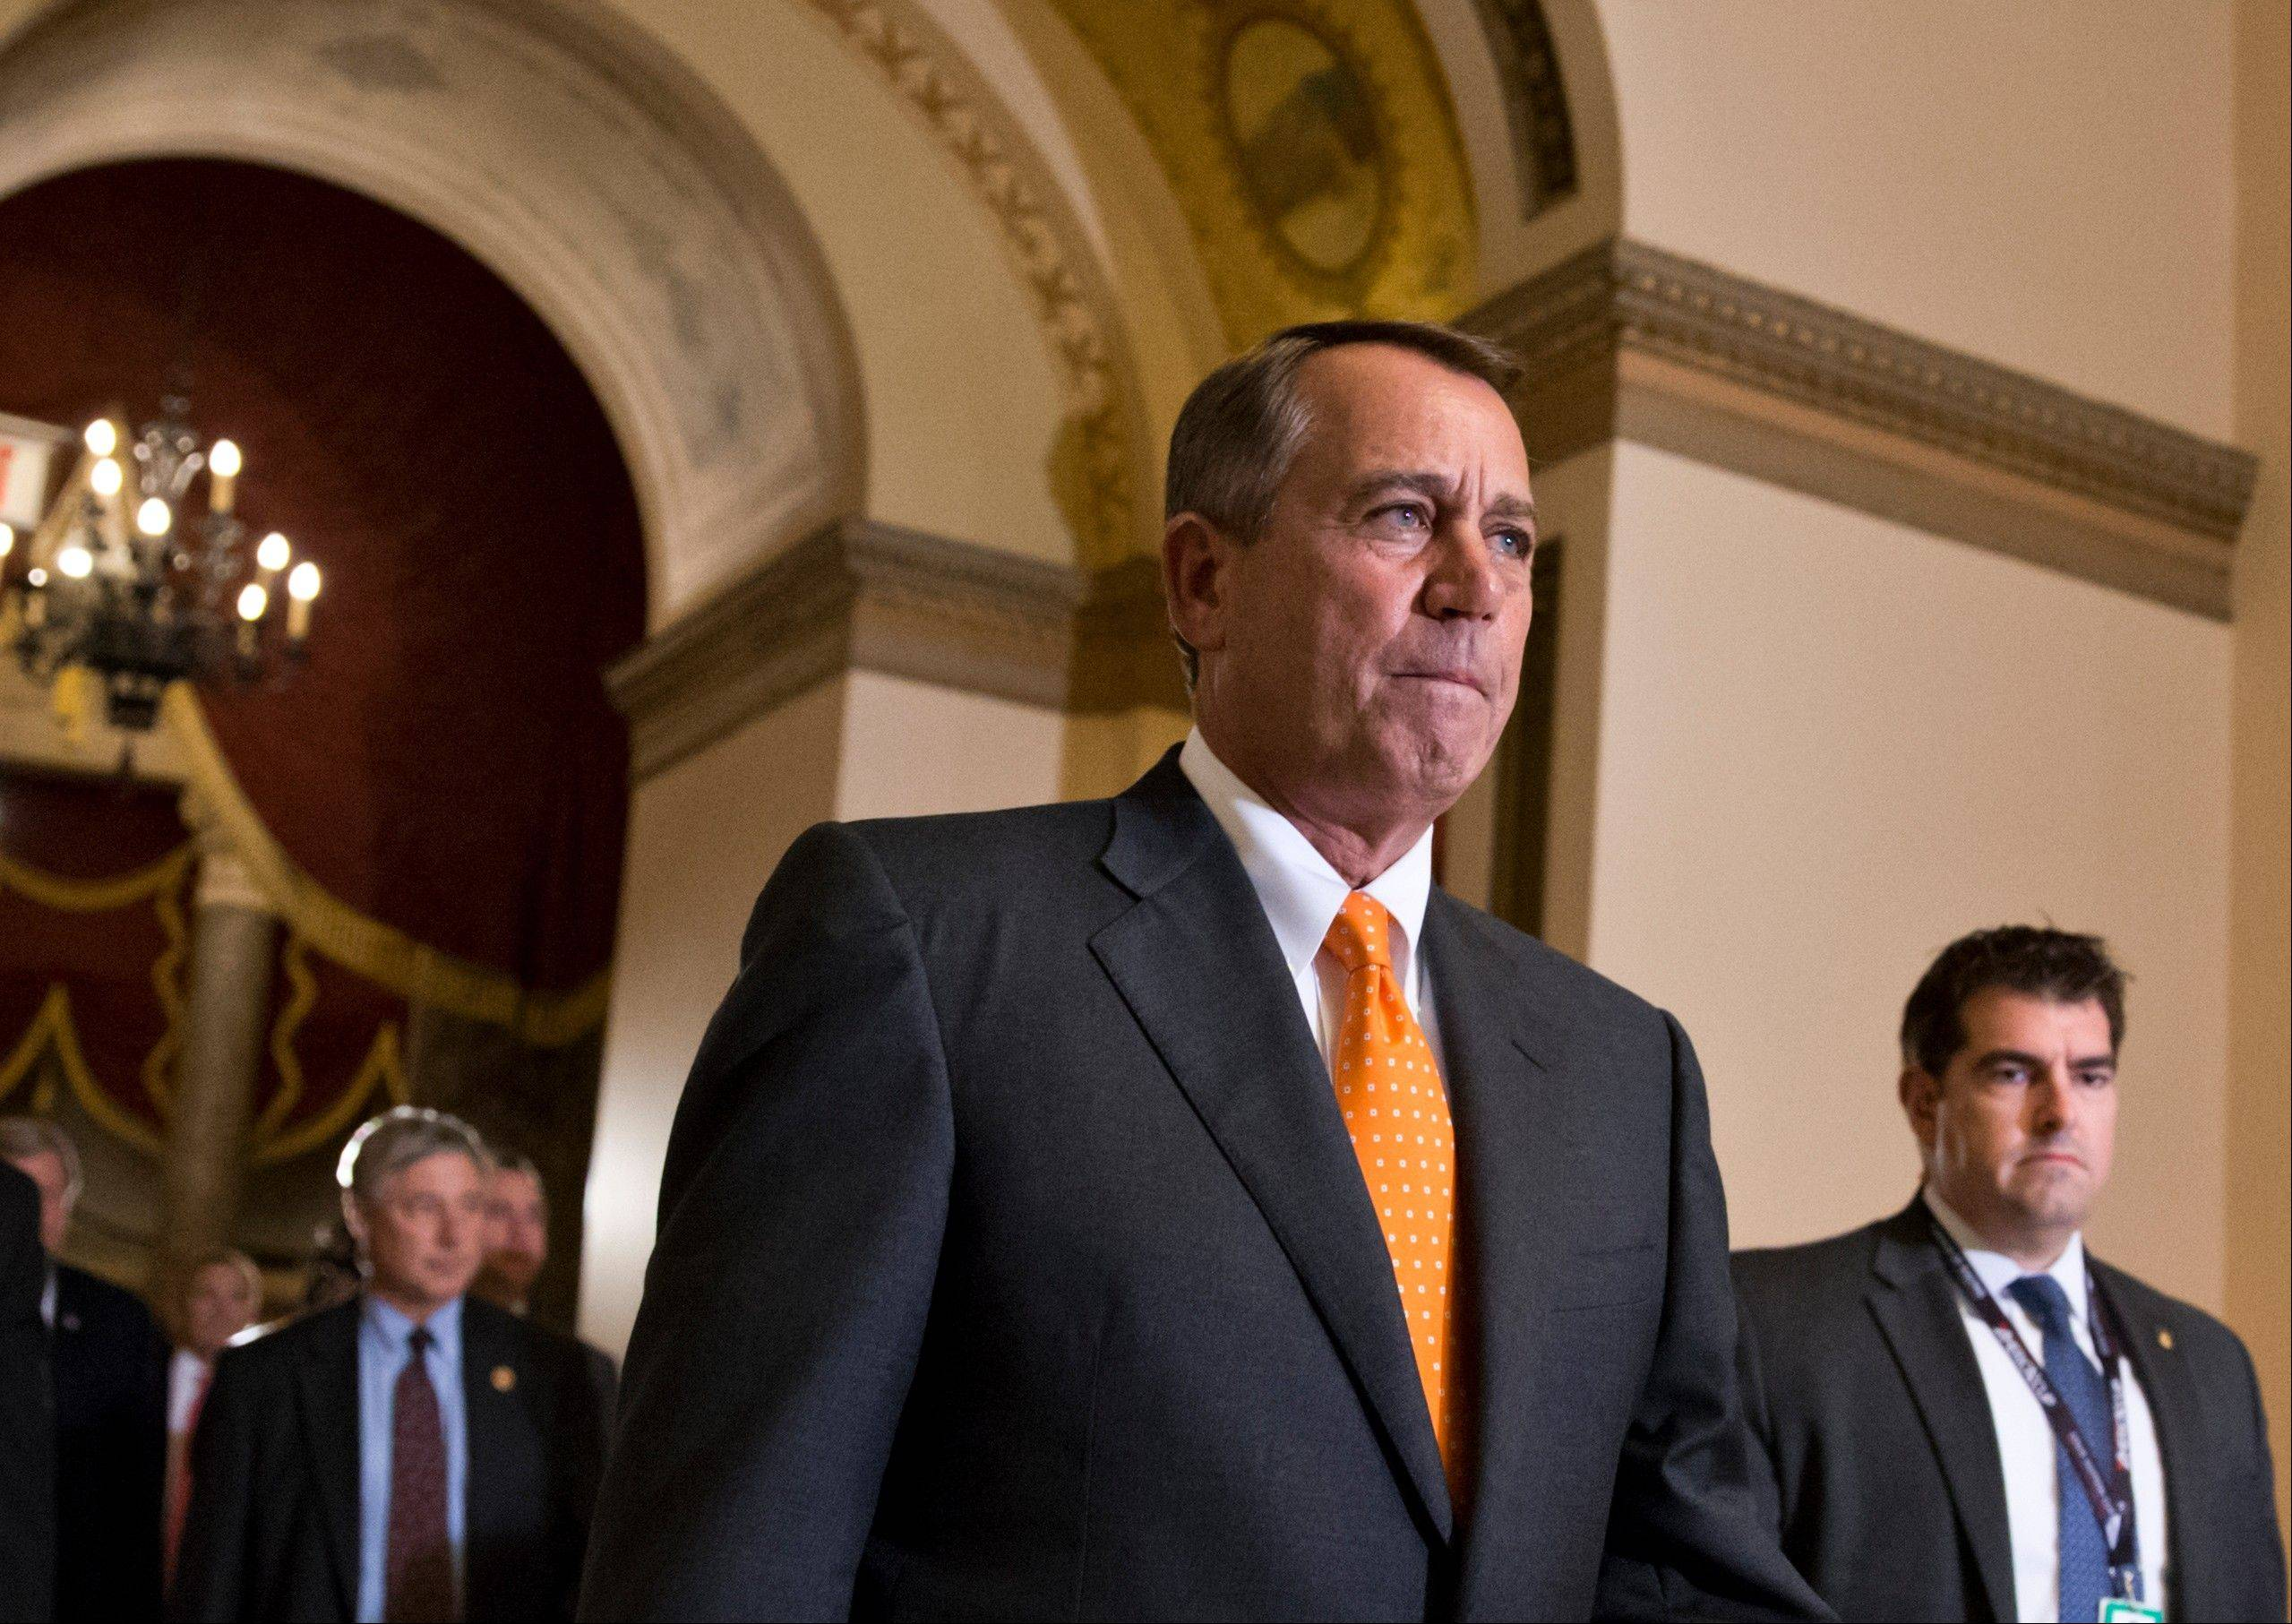 House Republicans refuse to let their supposed leader, Speaker John Boehner, steer them toward big policy decisions, leaving him to endure repeated public embarrassments. Yet they rally around Boehner as much as ever, affirming his hold on the speakership Wednesday even as they choked down a Democratic-crafted bill.